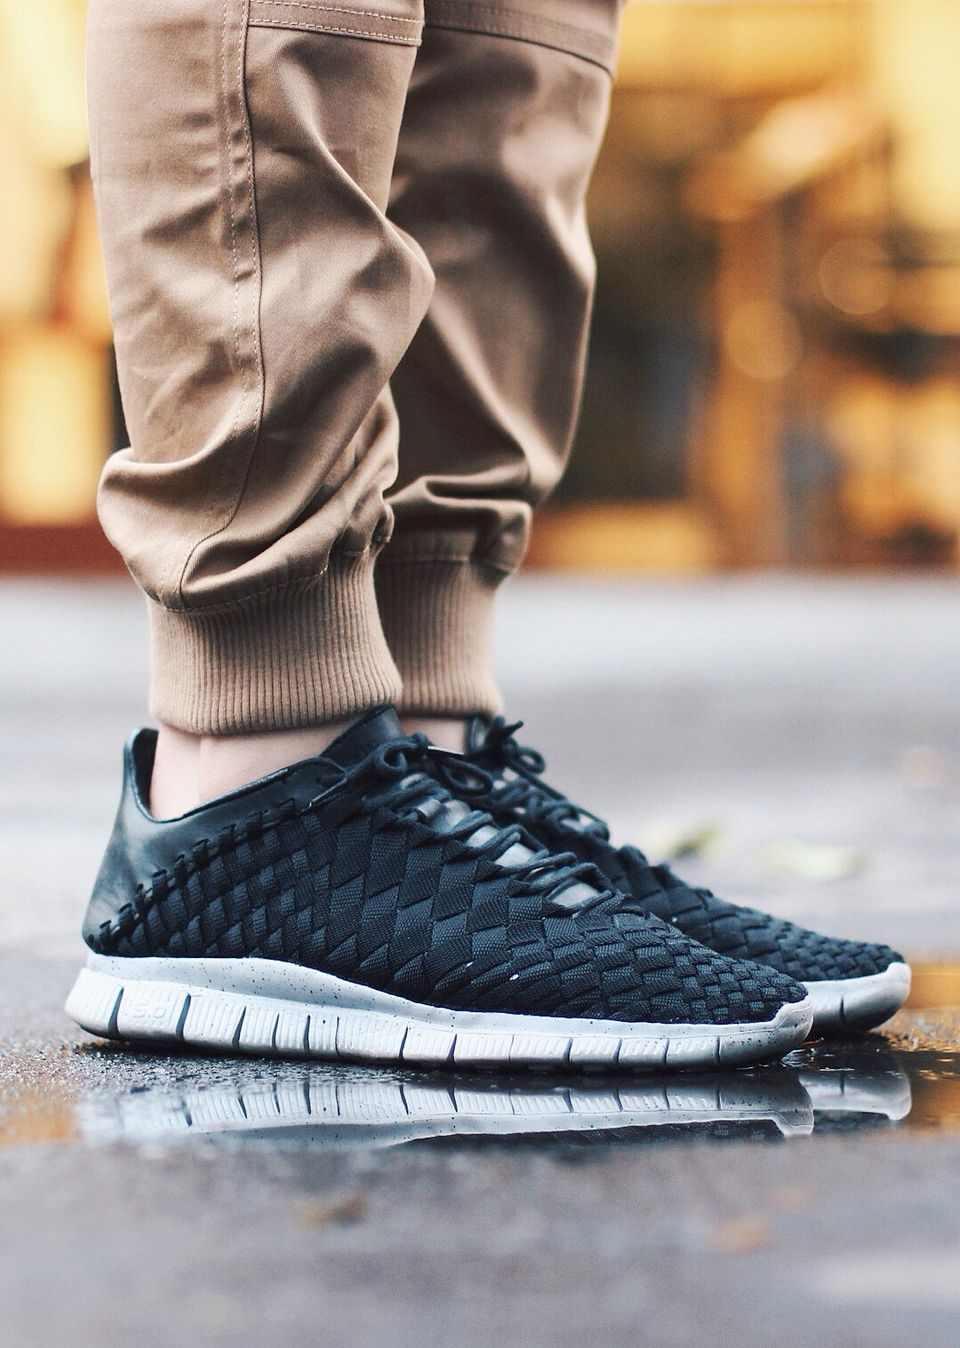 lowest price 0c8a4 4a138 Sweetsoles – Nike Free Inneva Woven NRG (by dimasindro)